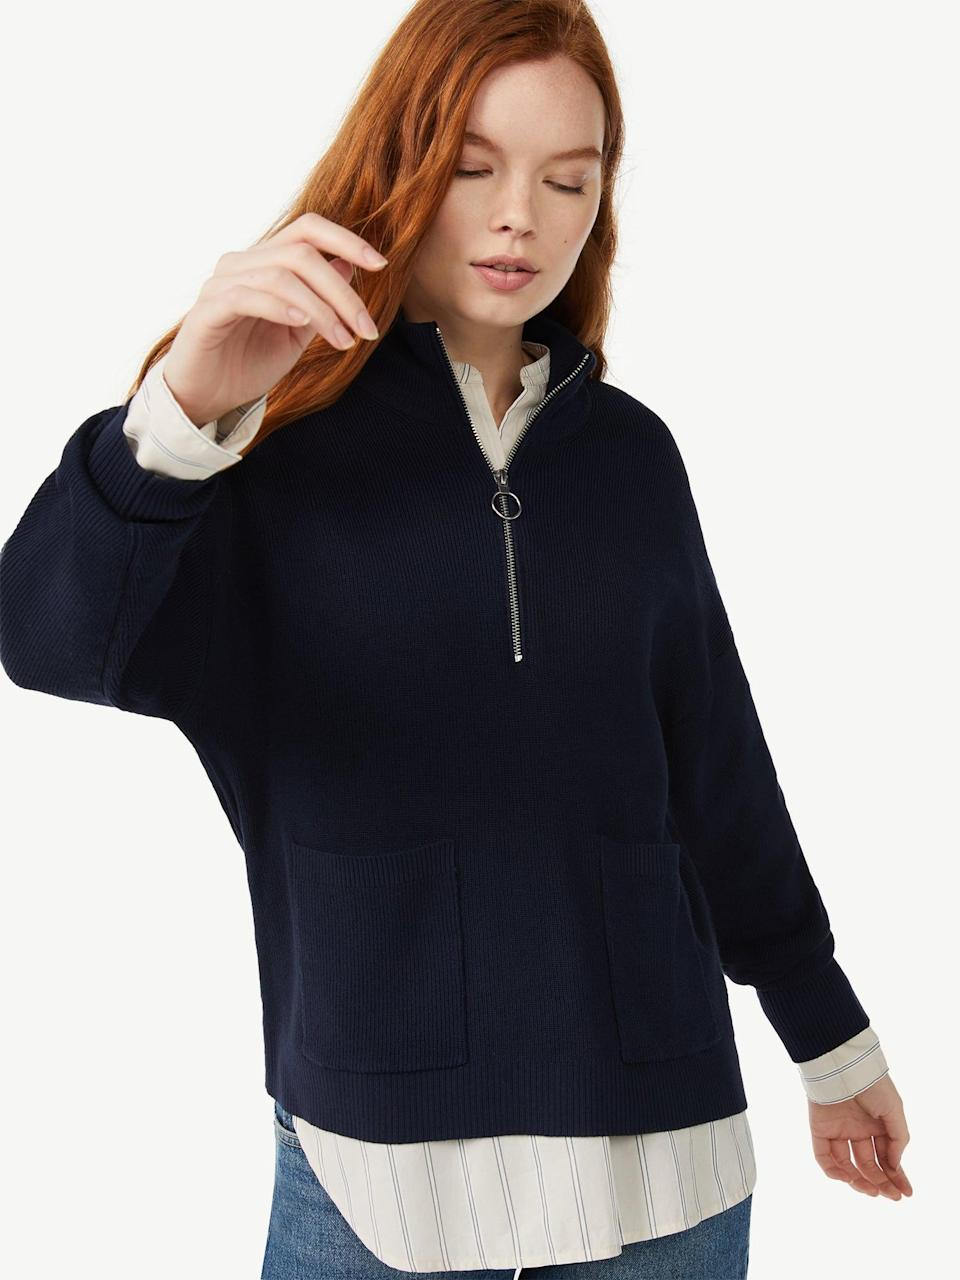 <p>Don't be afraid to dress up your sweatshirts. Take the <span>Free Assembly Women's Boxy Half-Zip Sweater</span> ($28), for example, which looks sharp when ($28) paired with a collared shirt and jeans.</p>